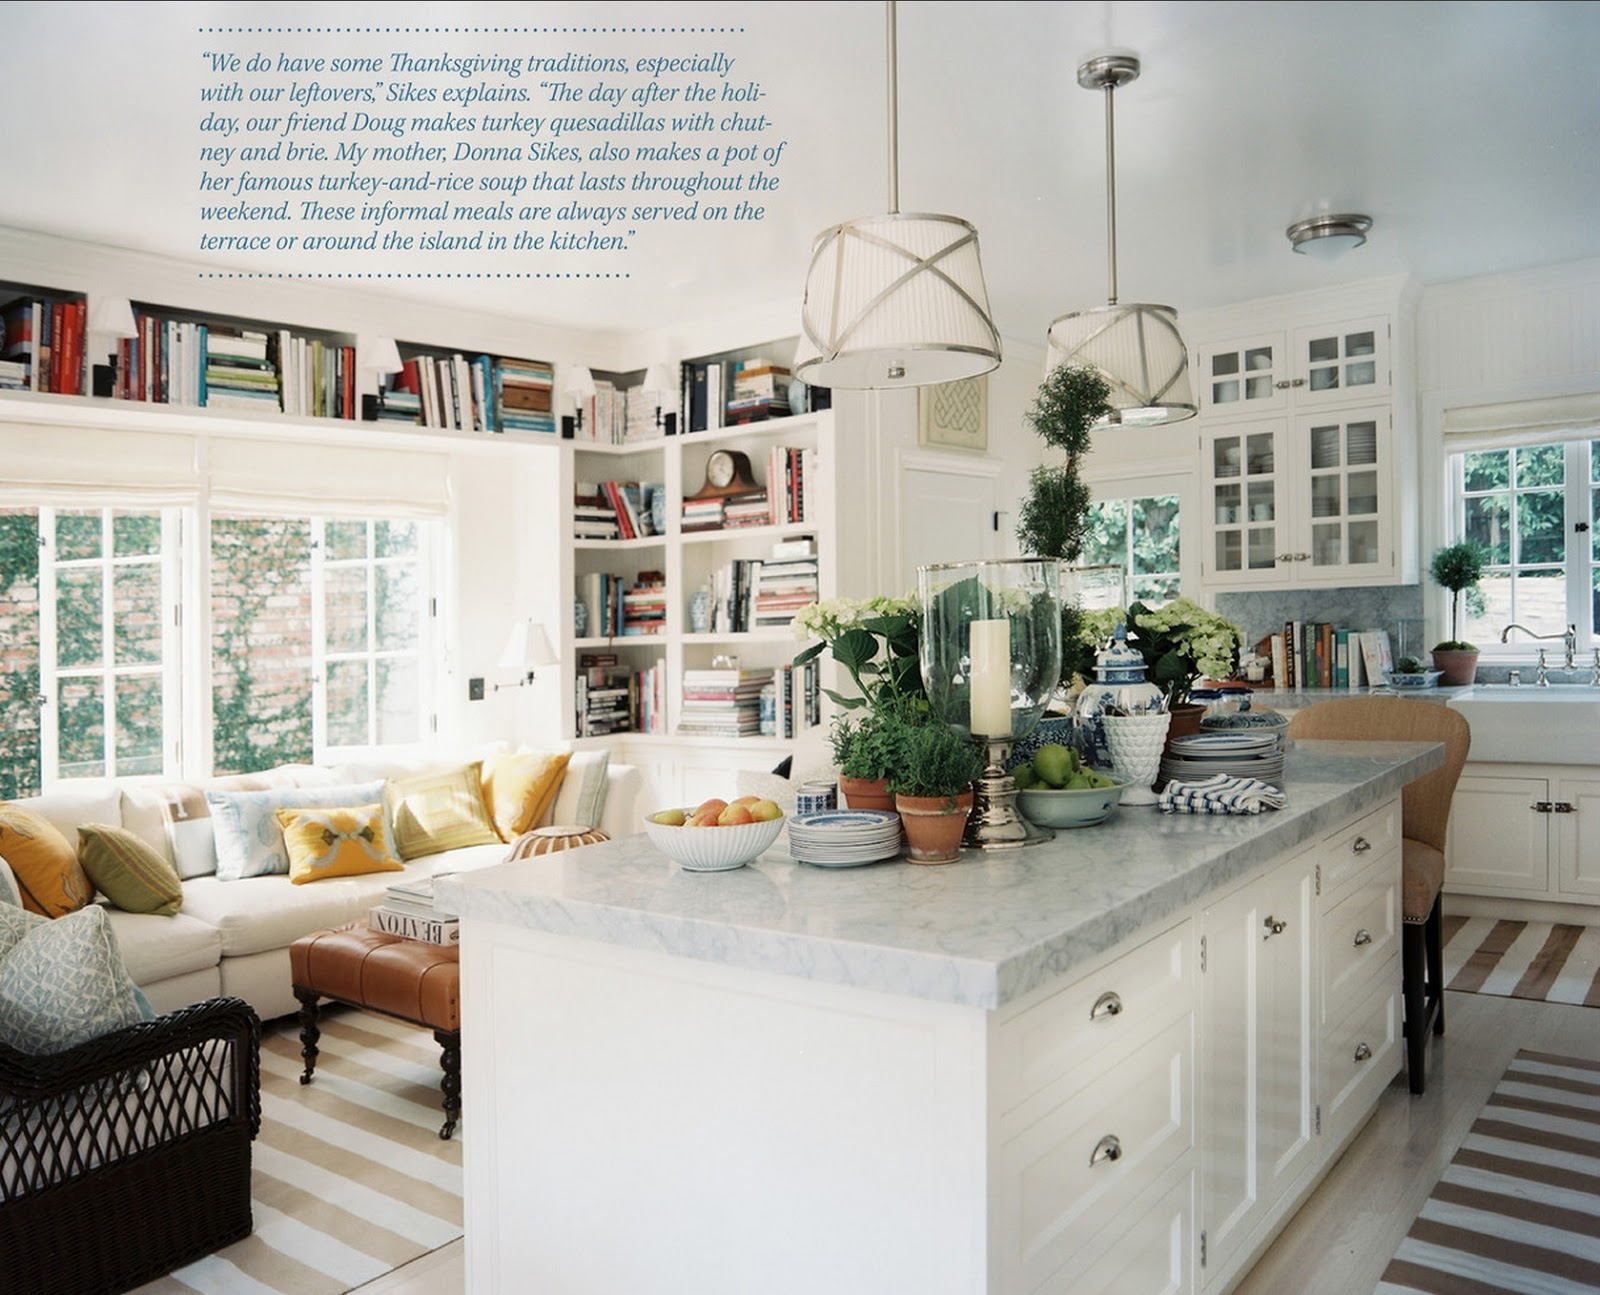 interior designer mark sikes southern california home open design style kitchen designs tagged kitchen interior design